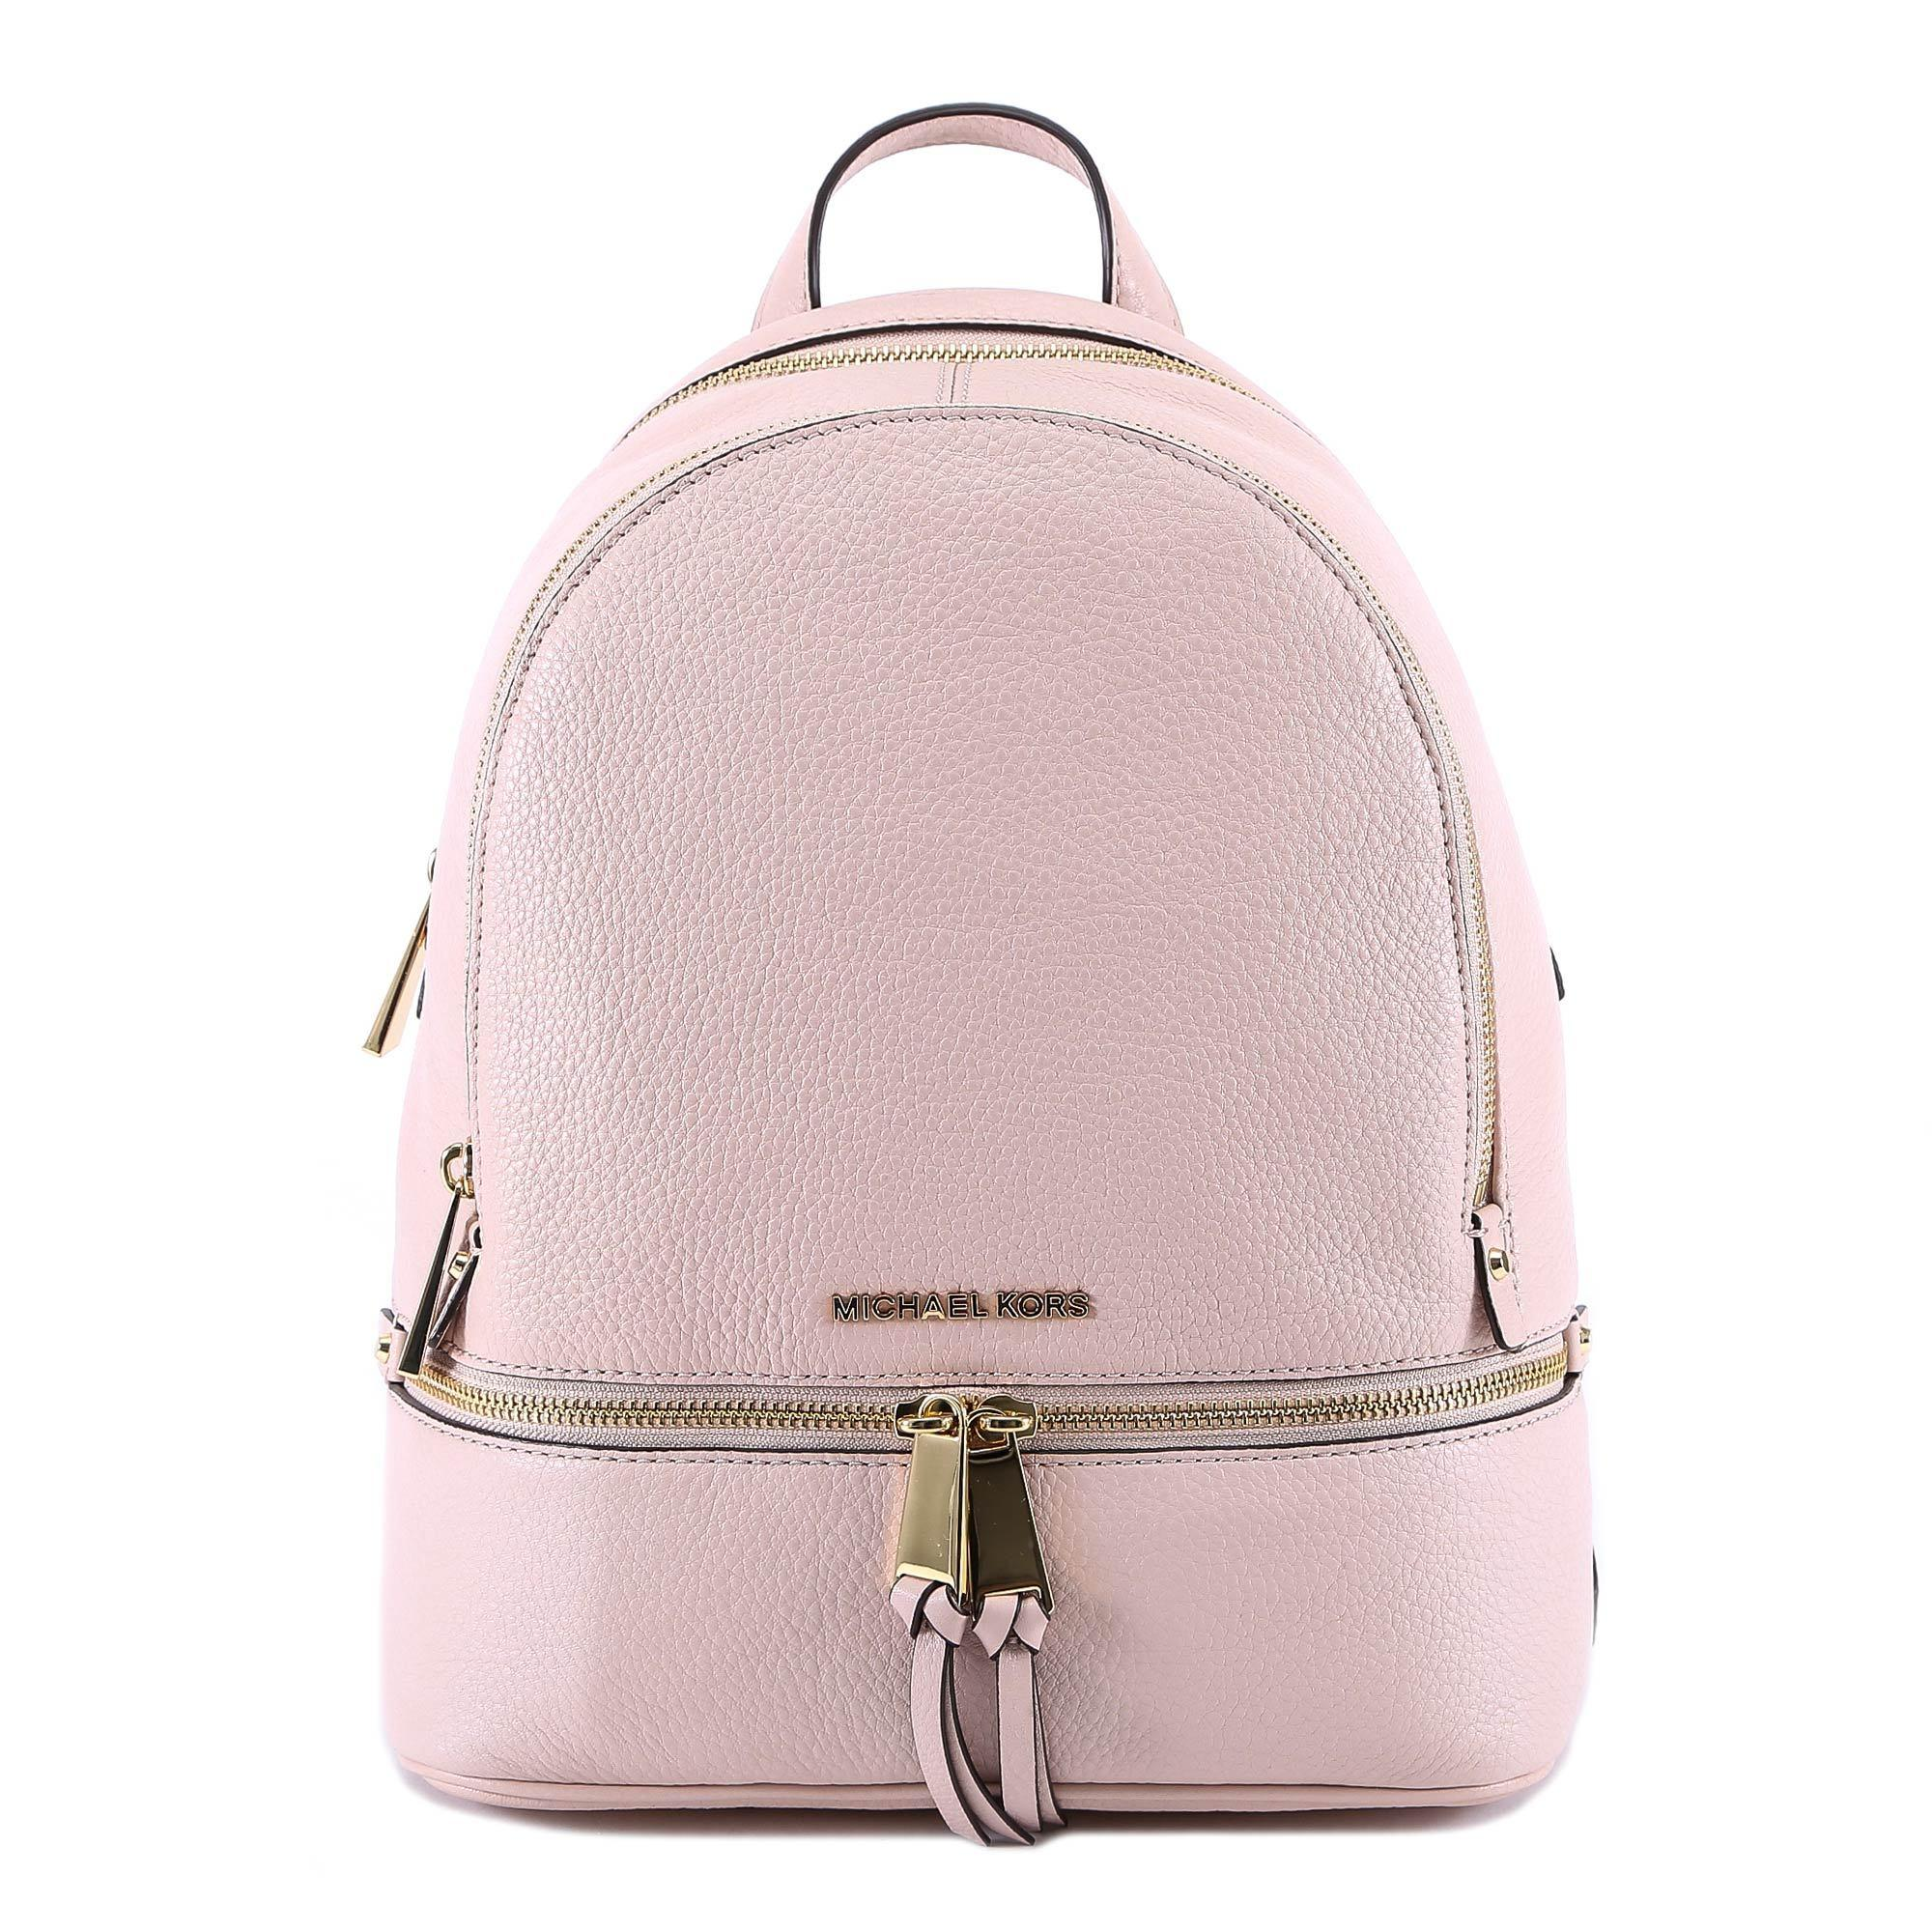 3c442691ddac MICHAEL Michael Kors Small Rhea Backpack in Pink - Lyst